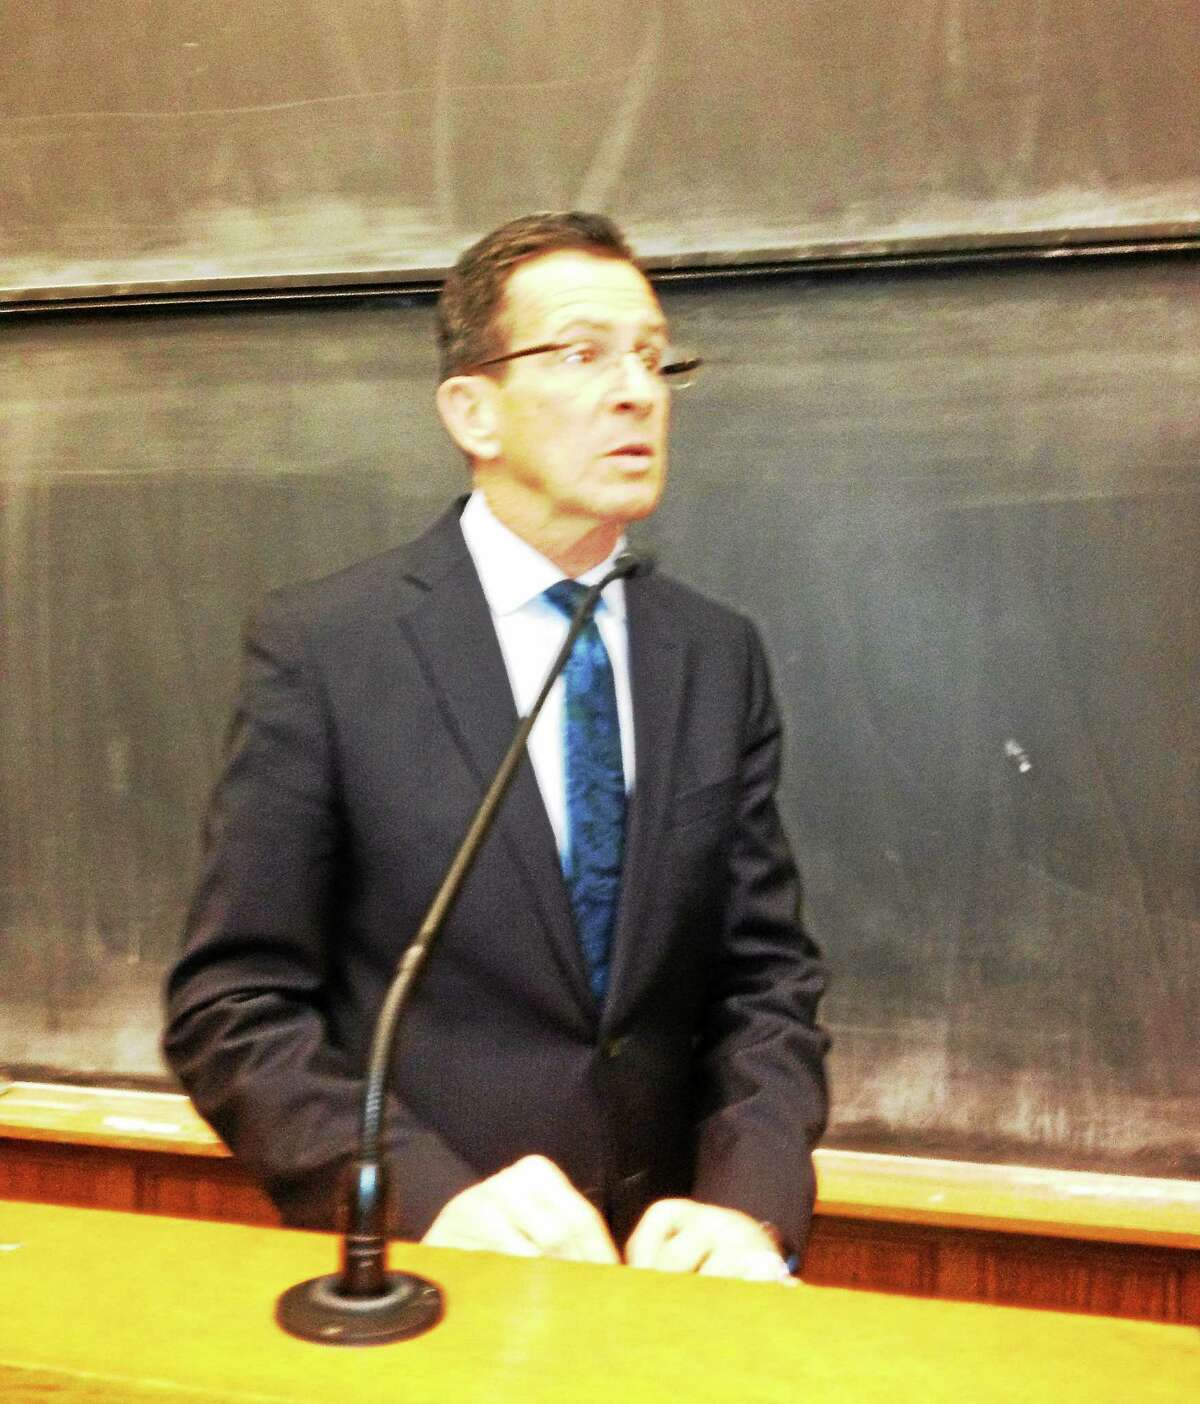 Mary O'Leary - New Haven Register) Gov. Dannel P. Malloy talks about crime reduction initiatives in a speech at Yale Law School